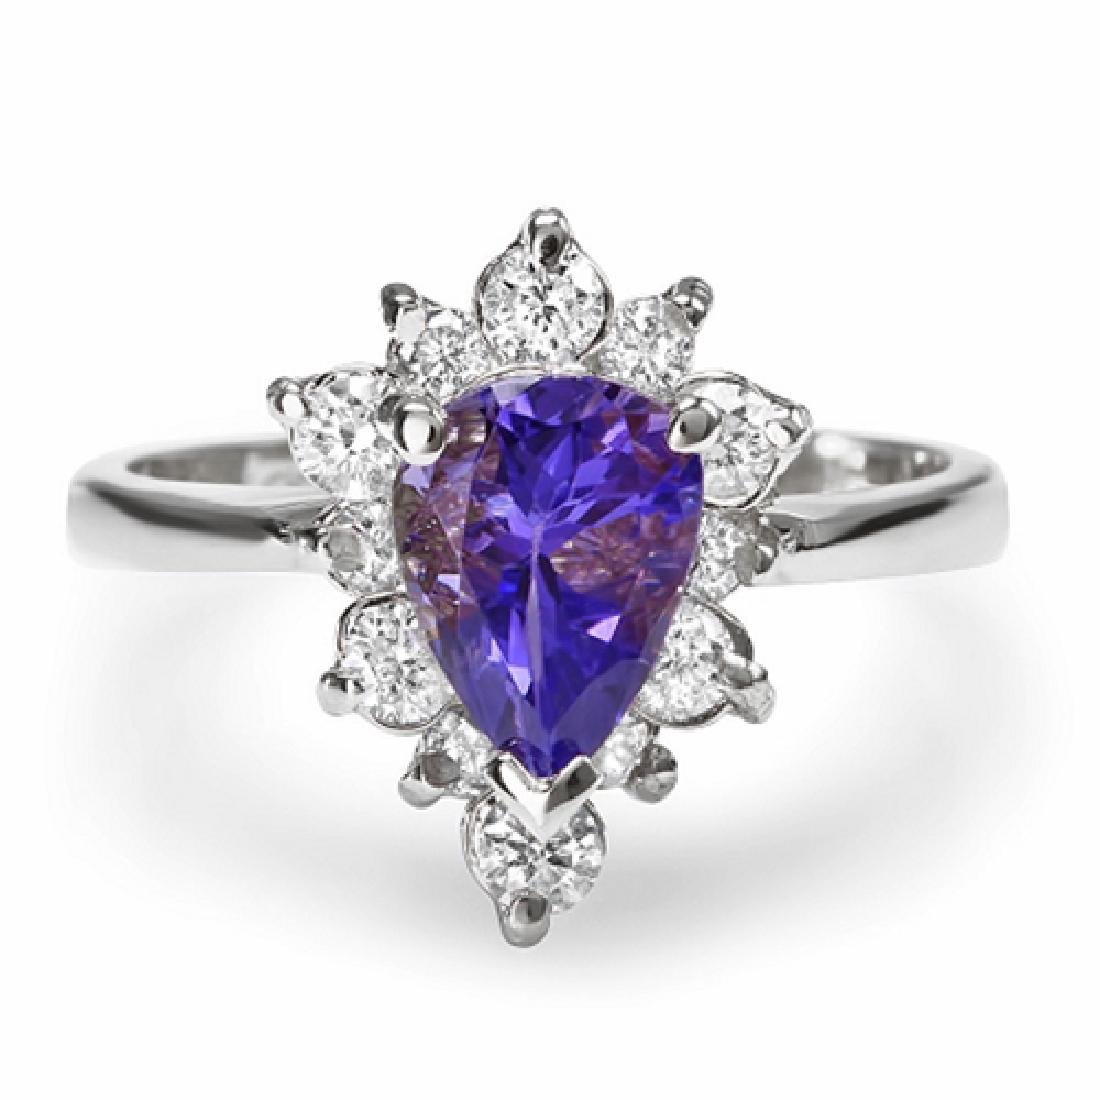 1.68 Carat Natural Tanzanite 18K Solid White Gold